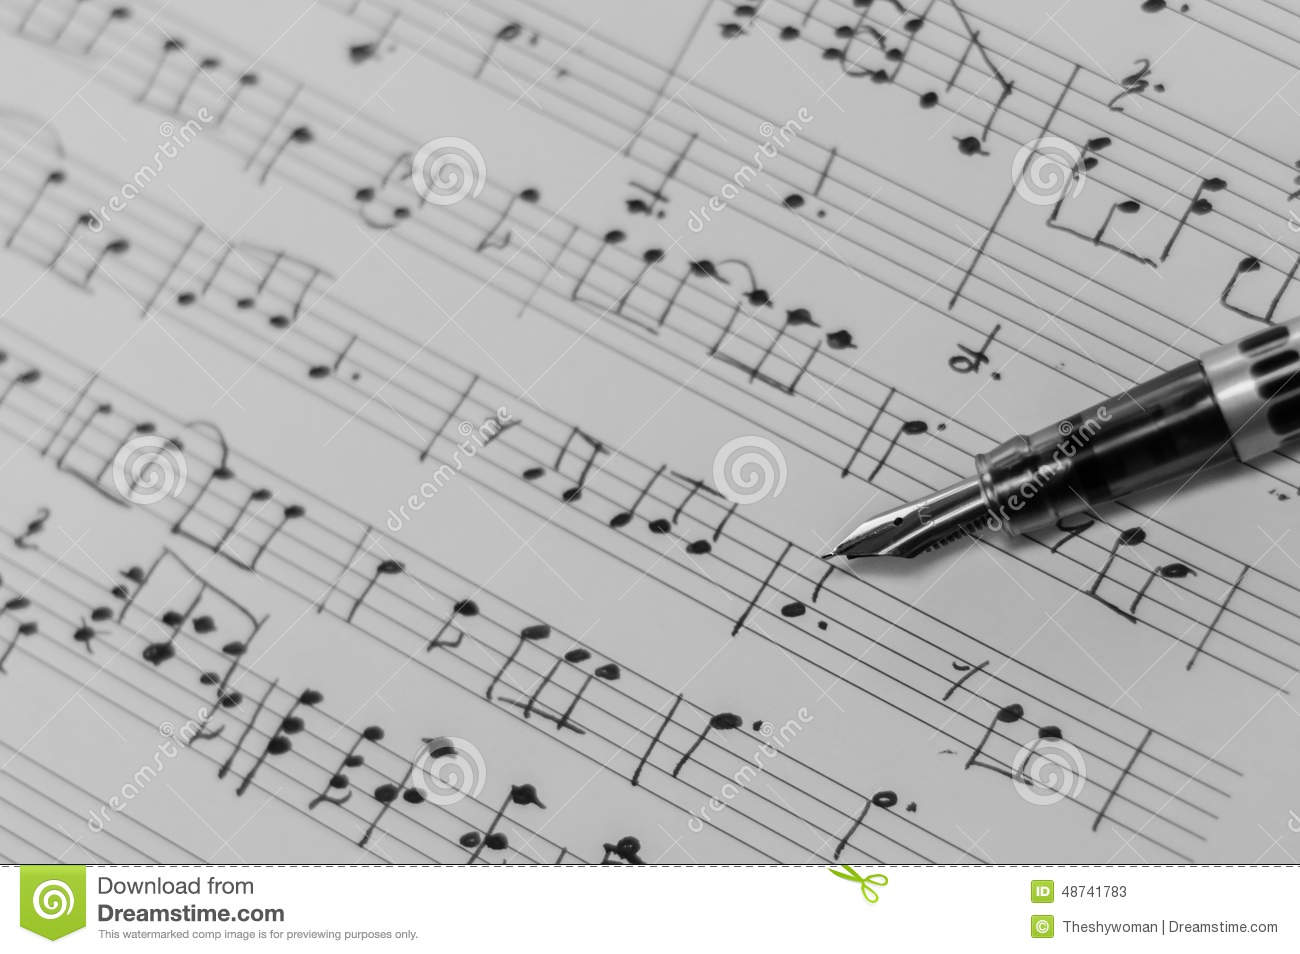 How to Write Music Notes for Songs